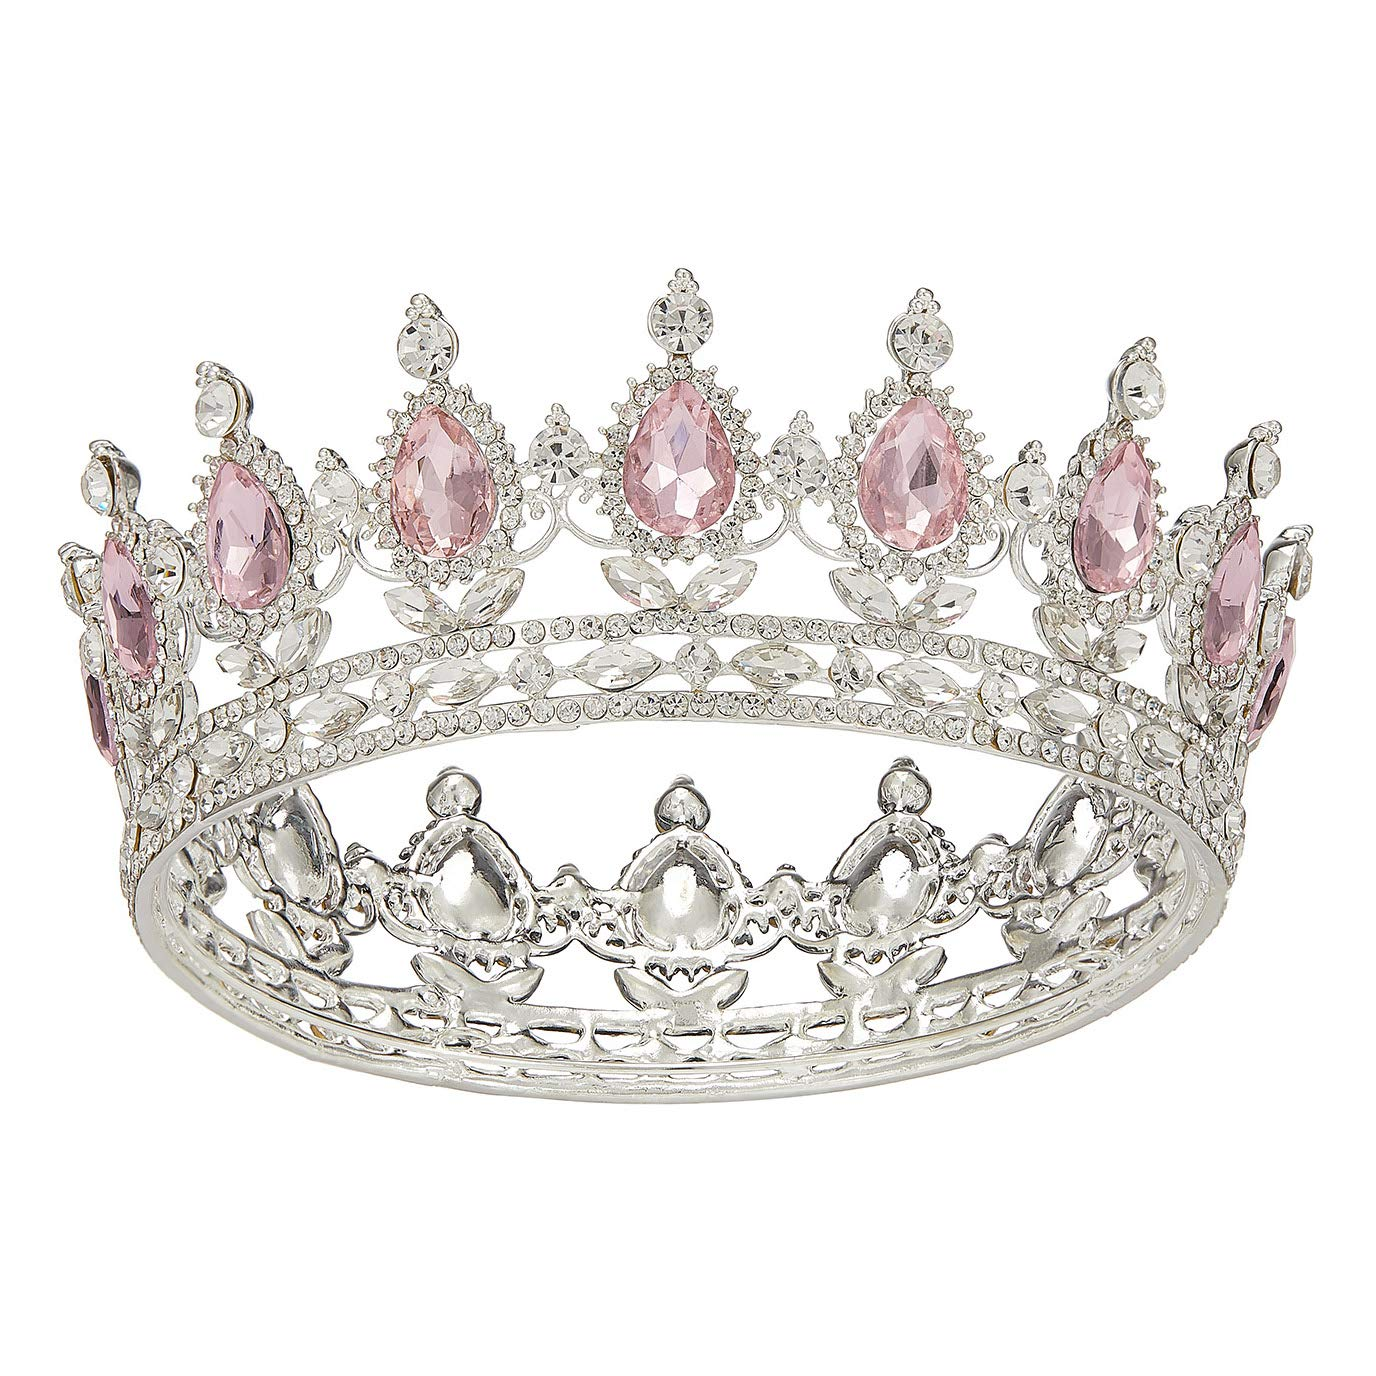 SWEETV Crystal Queen Crown for Women, Rhinestone Wedding Tiara Headband, Full Round Princess Crown Hair Accessories for Prom Birthday Costume Party,Pink+Silver